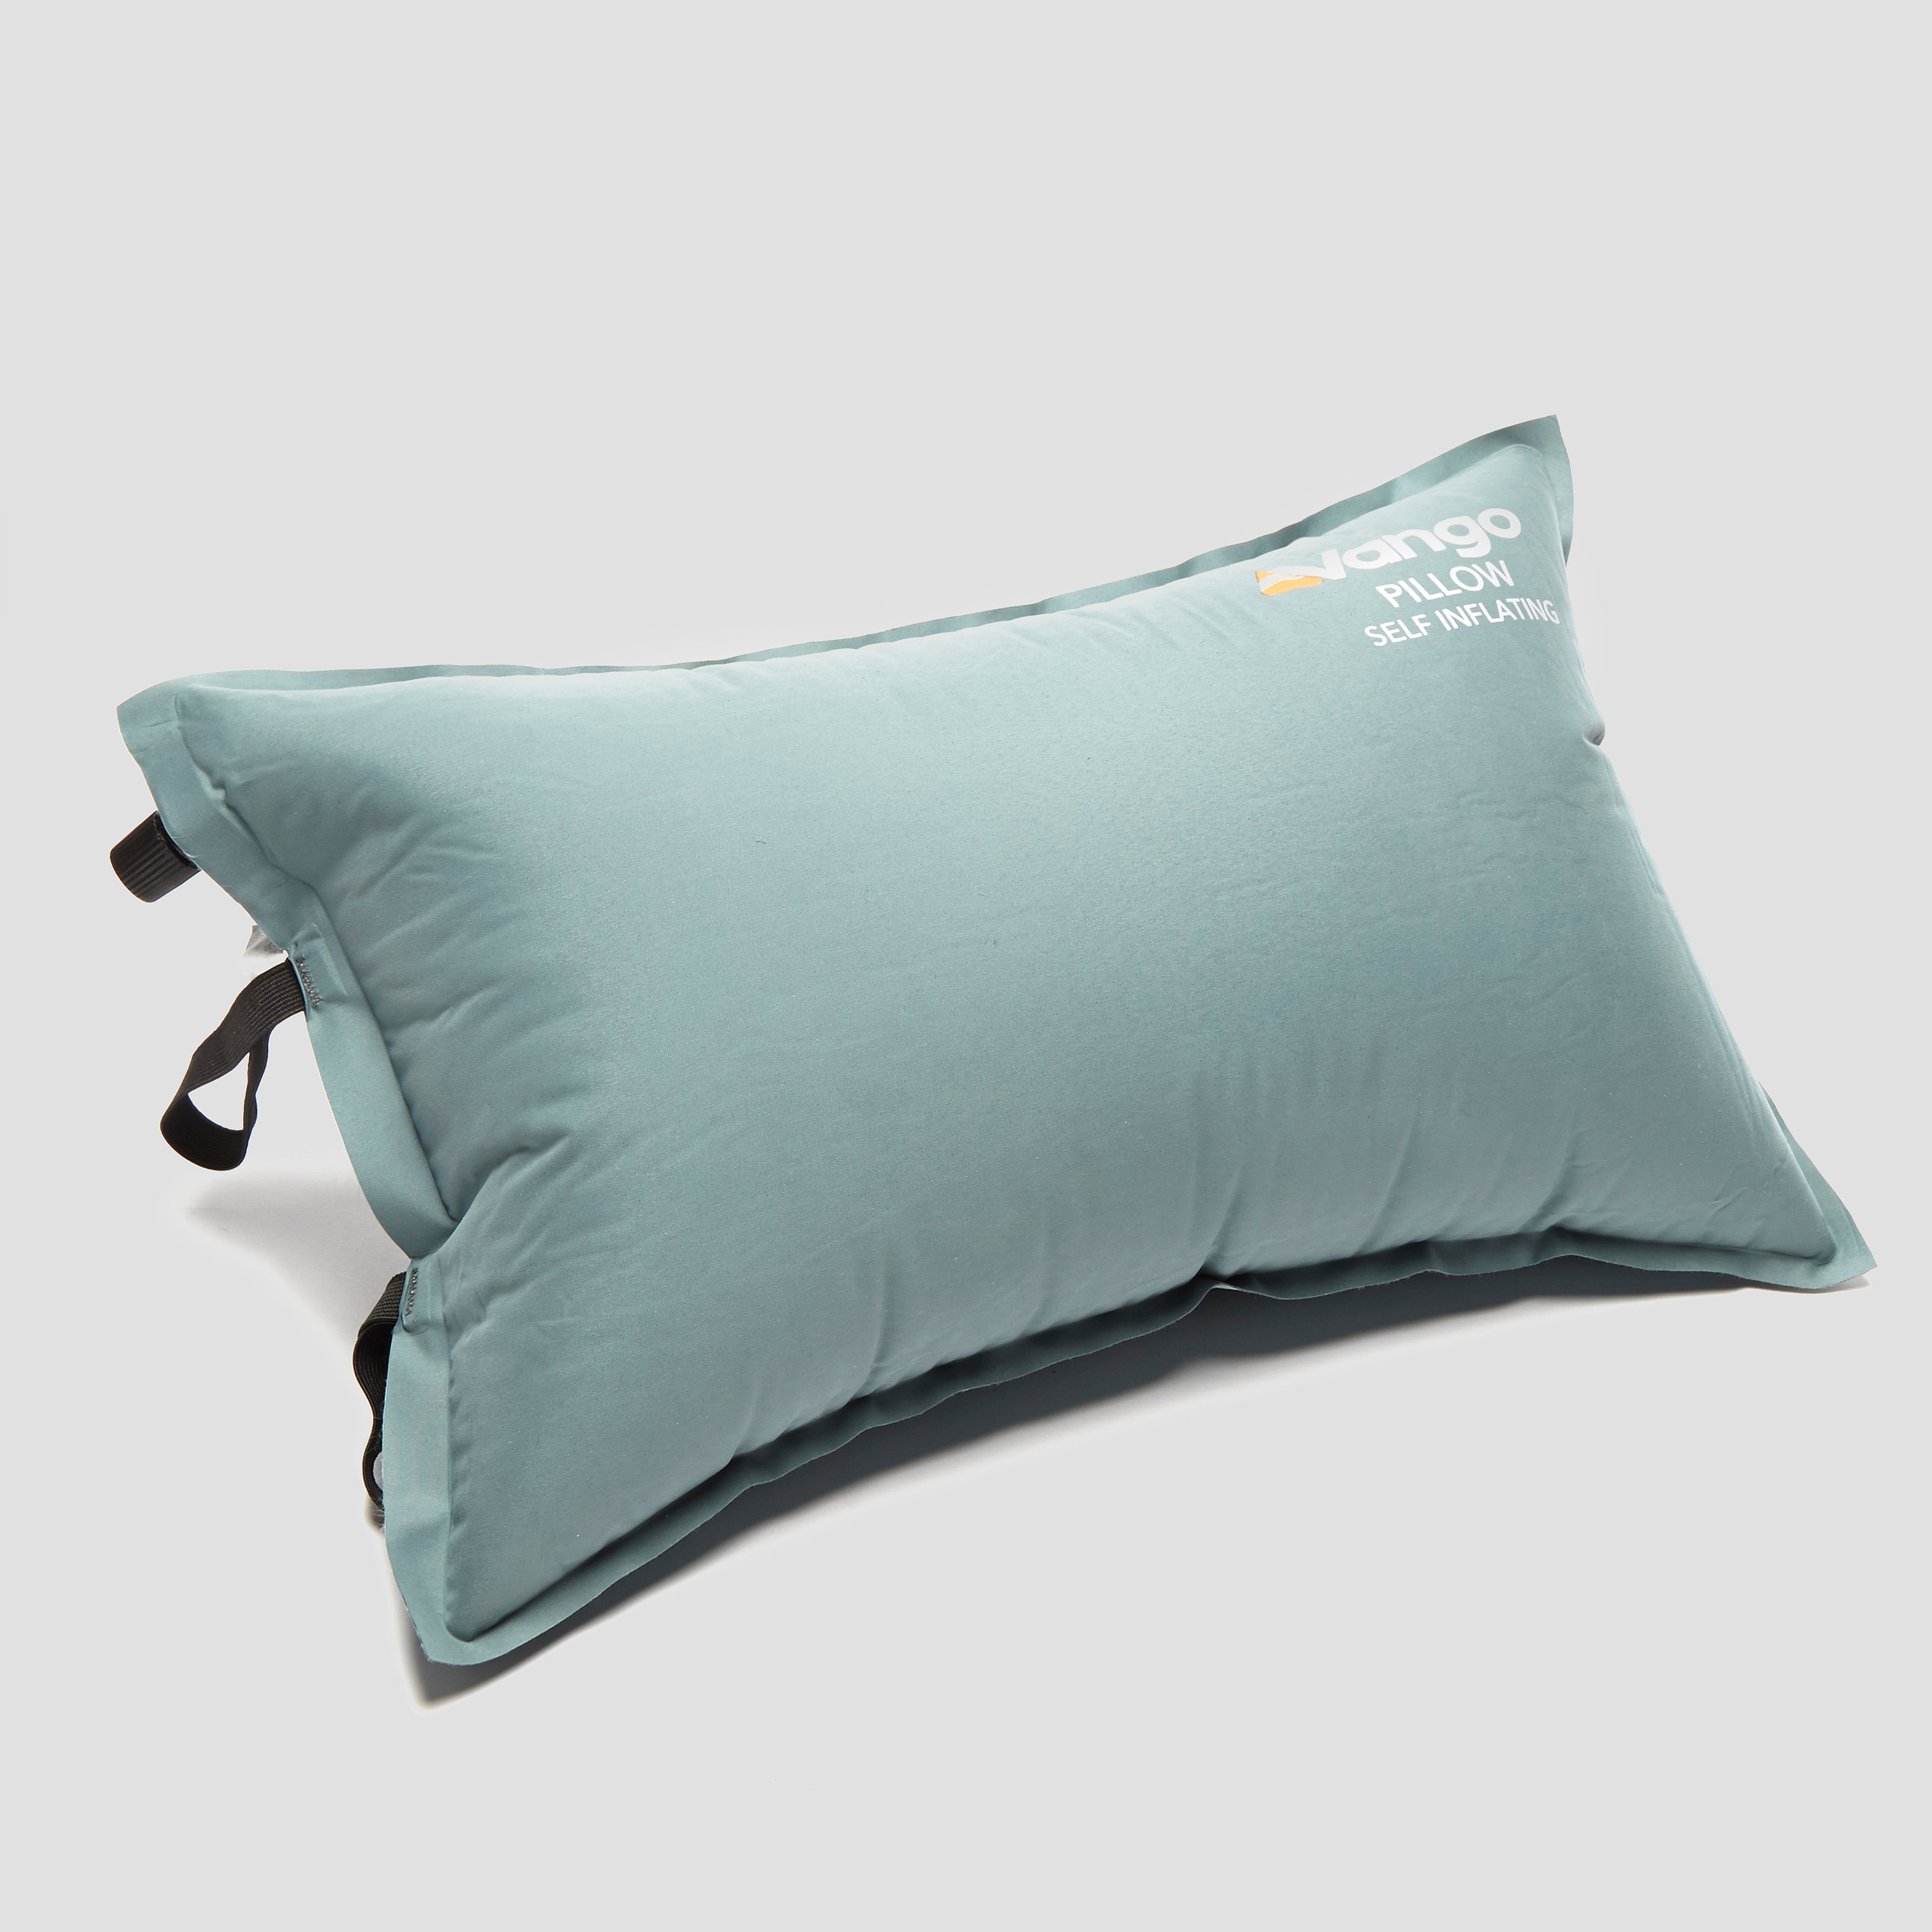 Vango Vango Self-Inflating Pillow